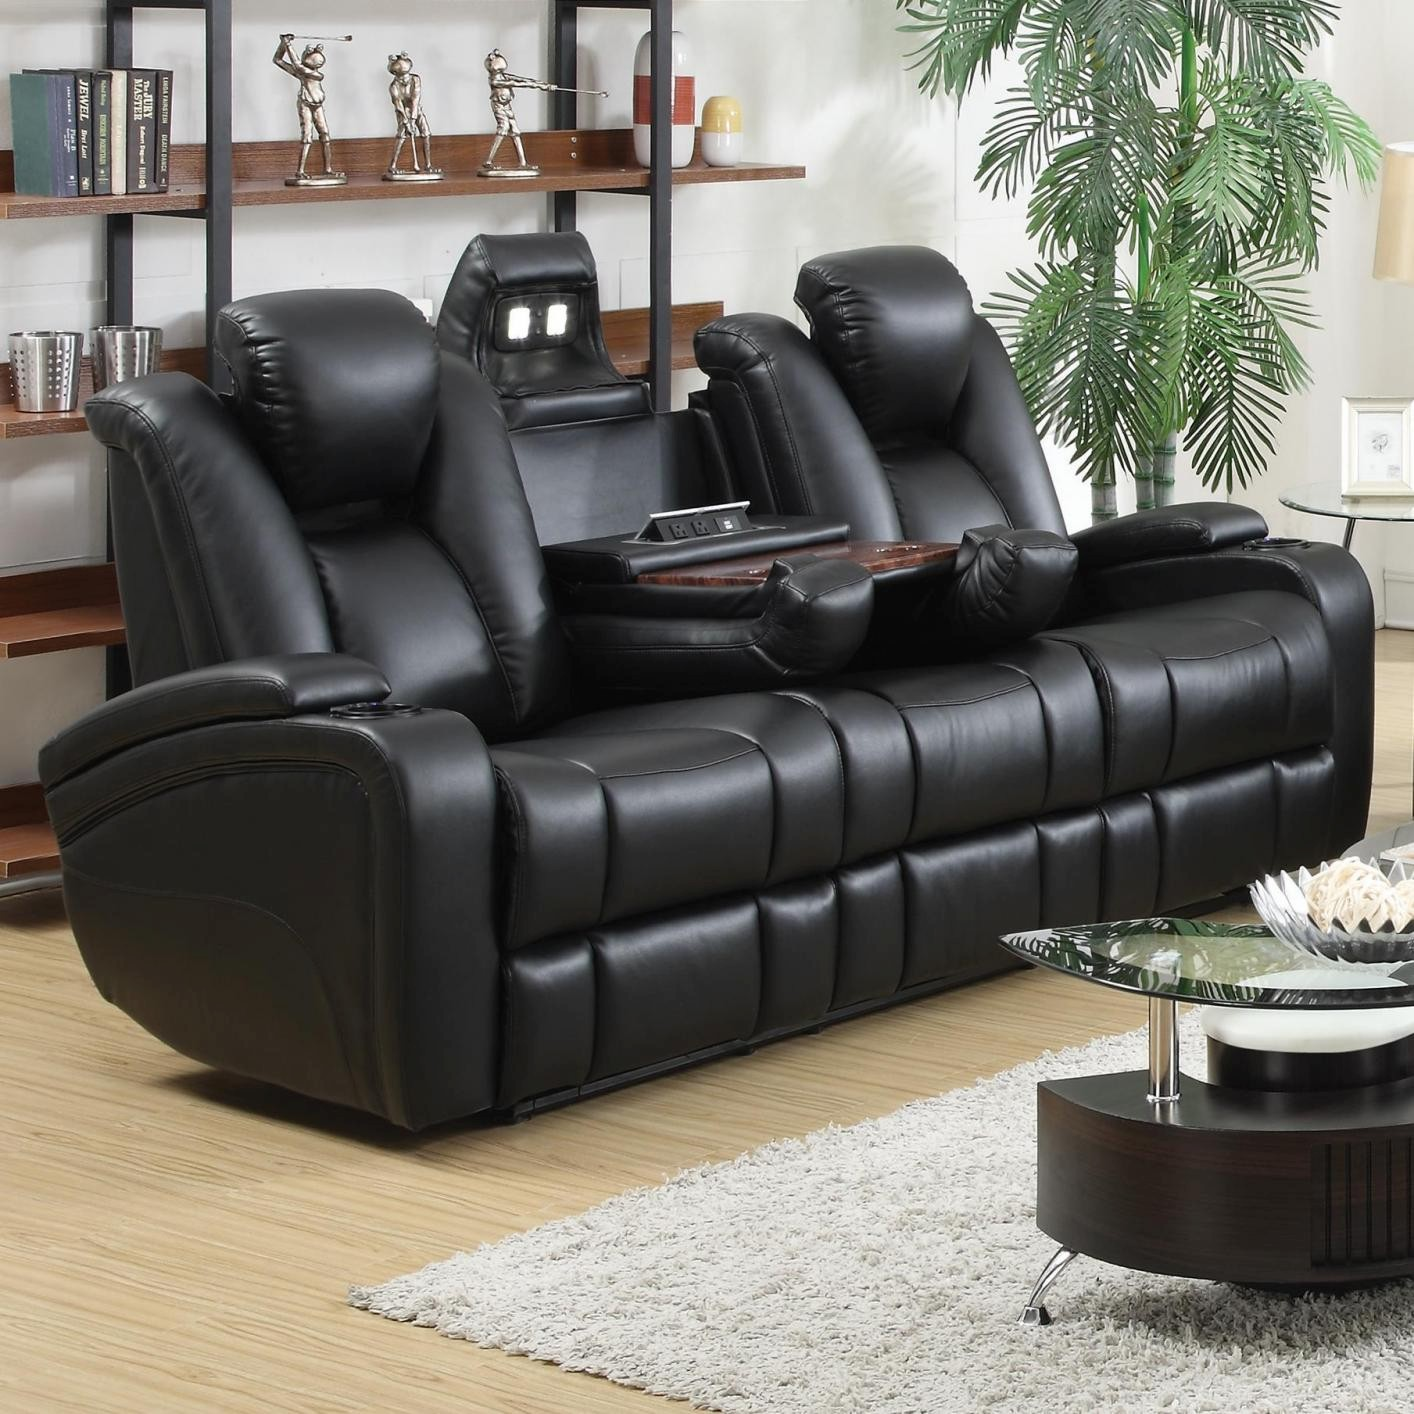 Electric Reclining sofa Best Of Black Leather Power Reclining sofa Steal A sofa Furniture Outlet Photograph